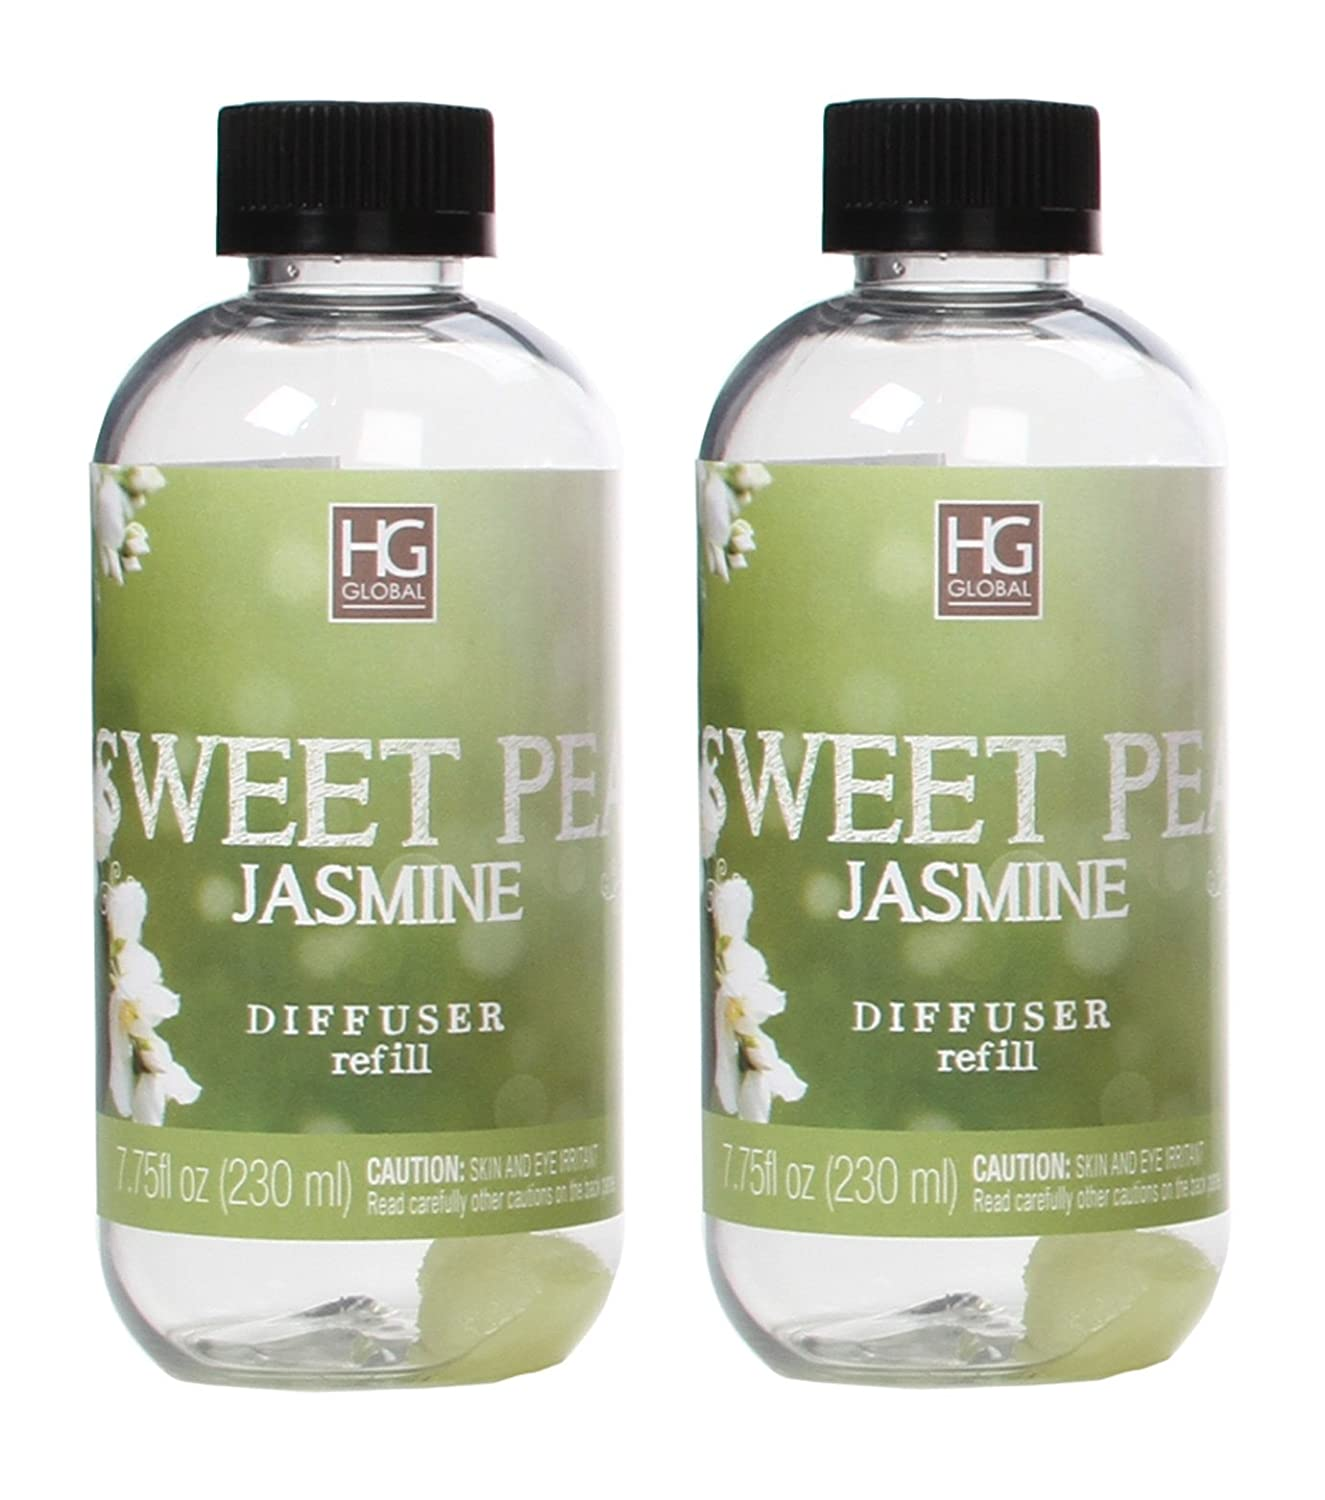 Hosley's Set of 2 Premium Sweet Pea Jasmine Reed Diffuser Refills Oil, 230 ml (7.75 fl oz) Made in USA.. BULK BUY. Ideal GIFT for weddings, spa, Reiki, Meditation settings W1 HG Global AMZ-BS52851WD-1-EA